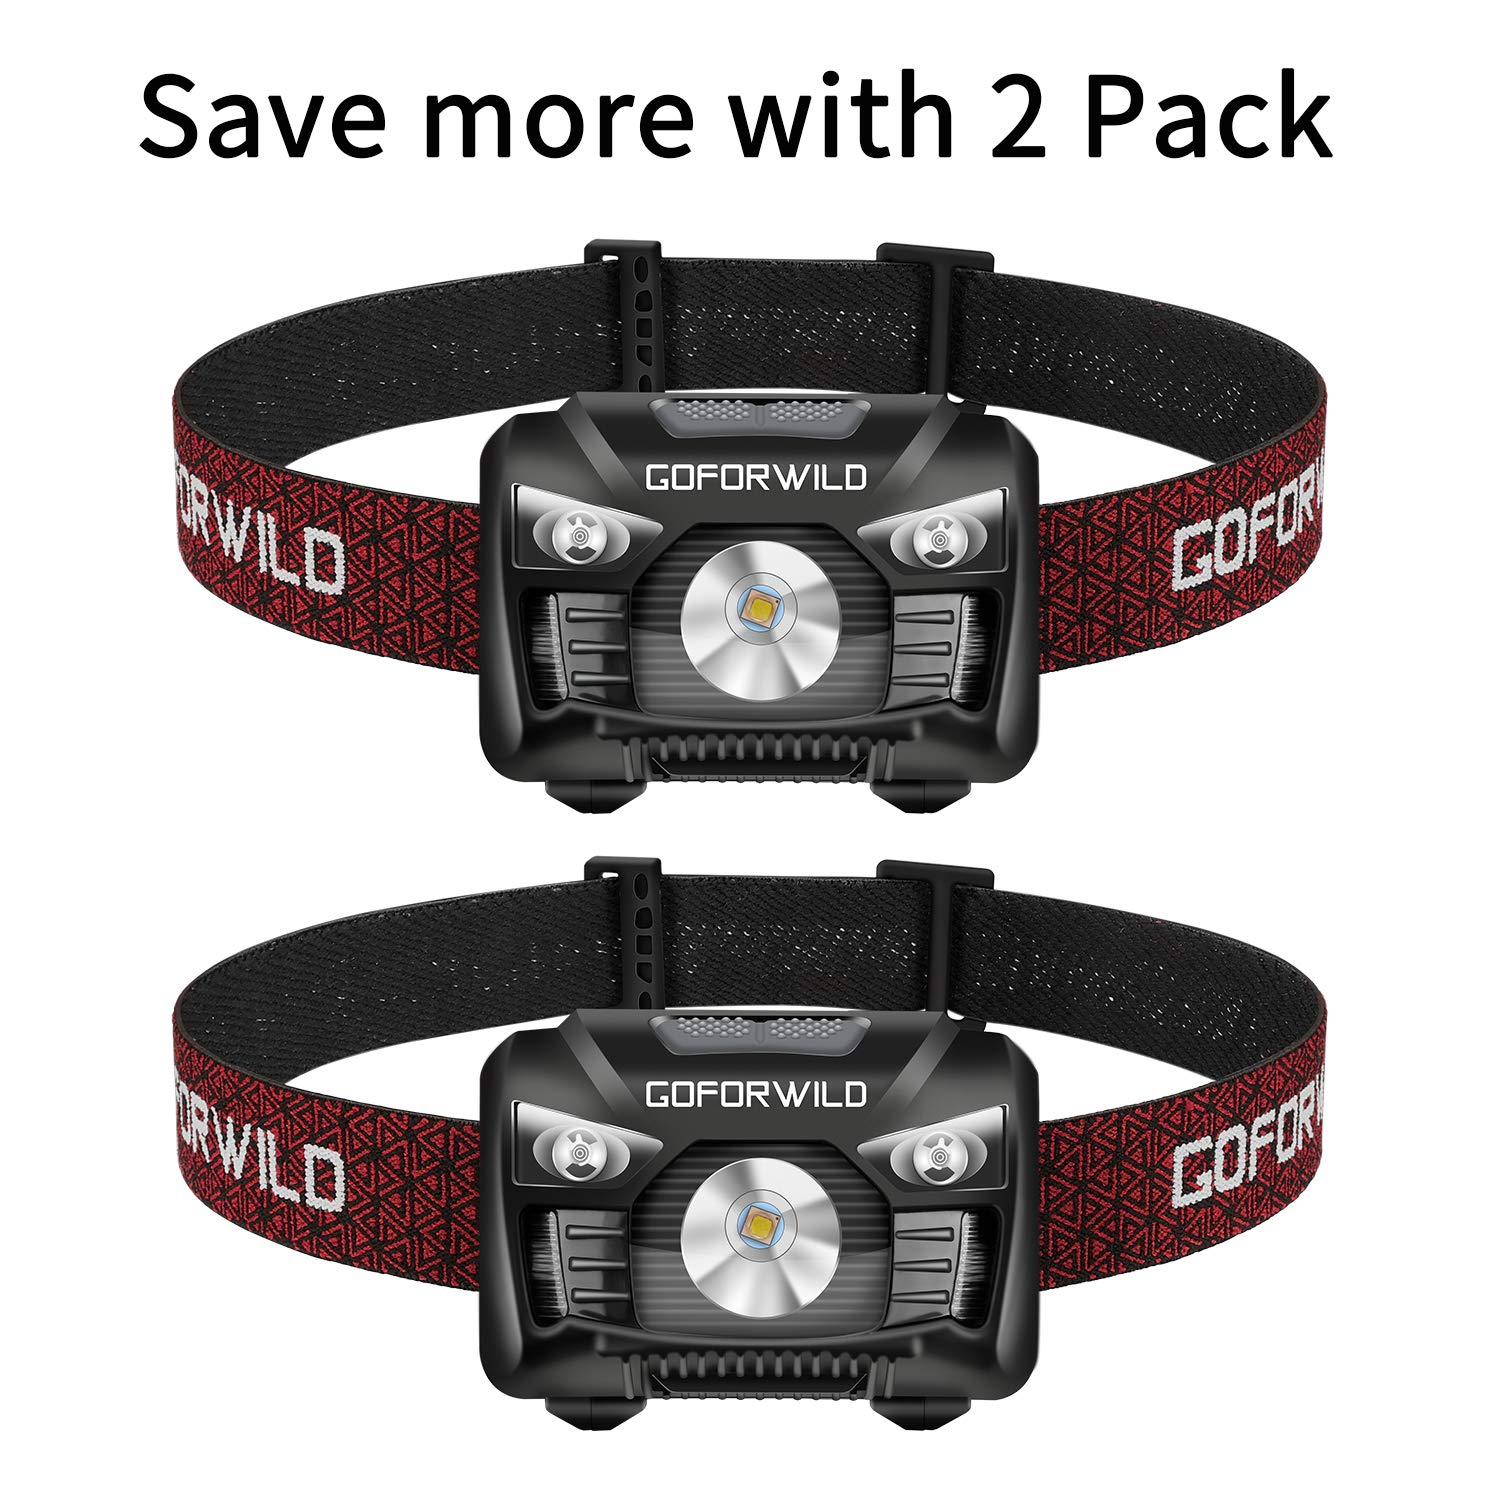 2 Pack of Rechargeable Headlamp, 500 Lumens White Cree LED Head lamp with Red light and Motion Sensor Switch, Perfect for Running, Hiking, Lightweight, Waterproof, Adjustable Headband, 5 Display Modes by GOFORWILD